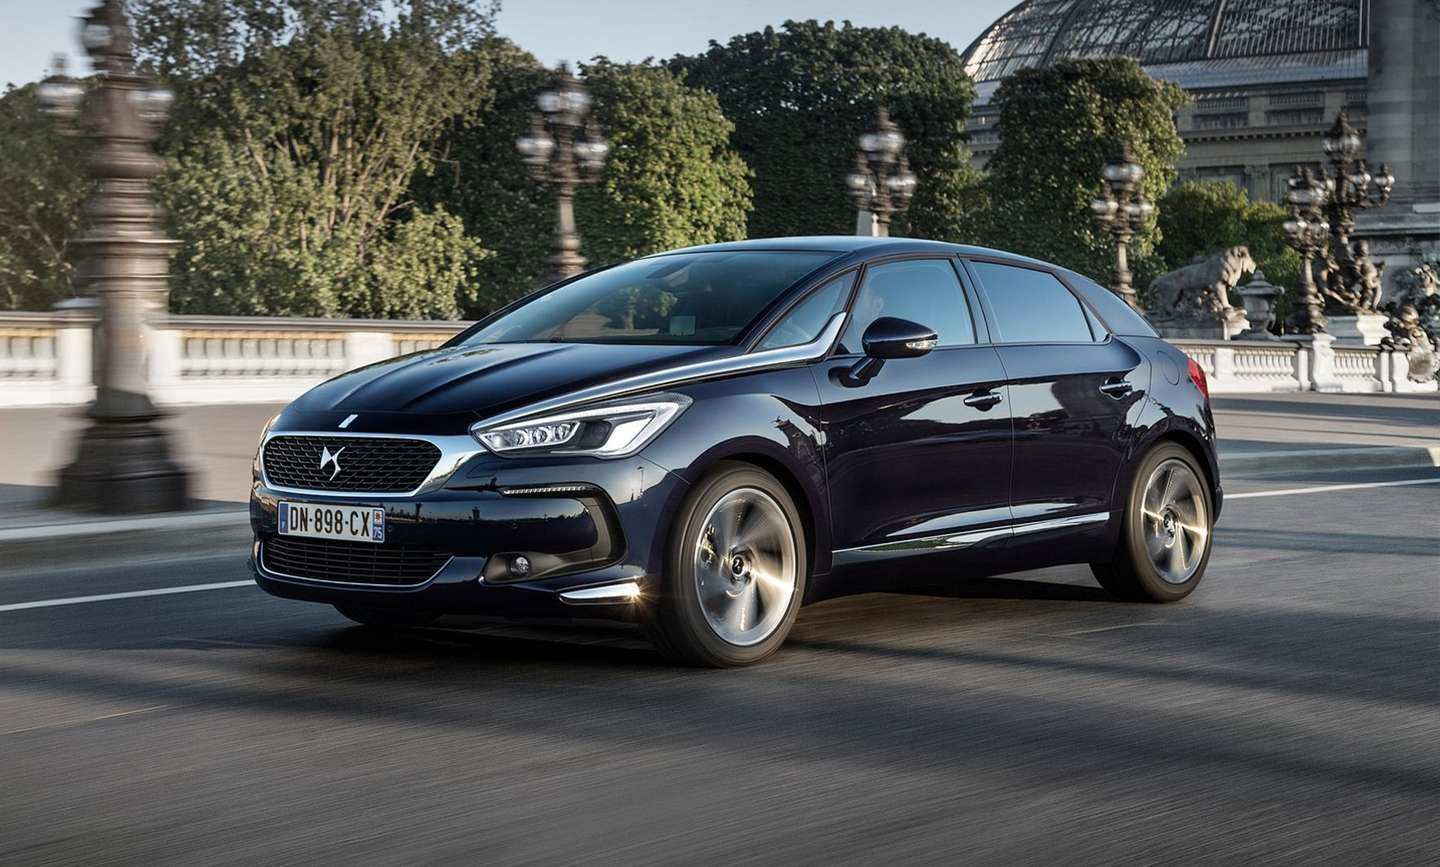 26 The Best 2019 Citroen DS5 Research New